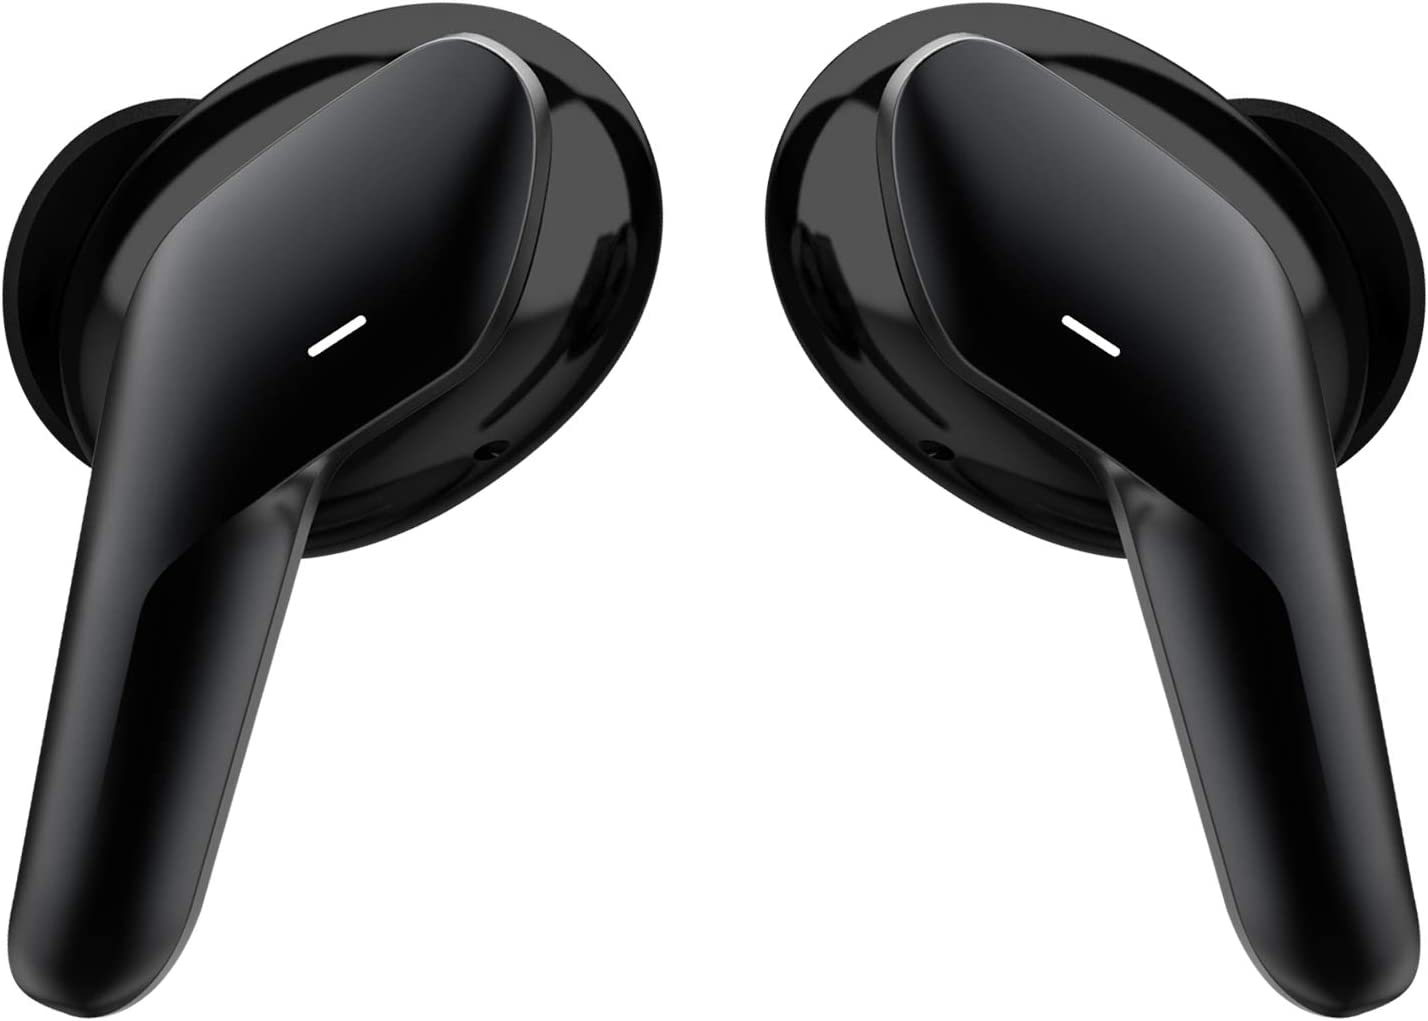 True Wireless Earbuds Headphones isooco Bluetooth 5.0 Earphones Touch Control 12 Hours Playtime TWS Stereo Mic Headset Type-C Charging Case for iPhone 12 11 X 8 Plus 7/Android Devices